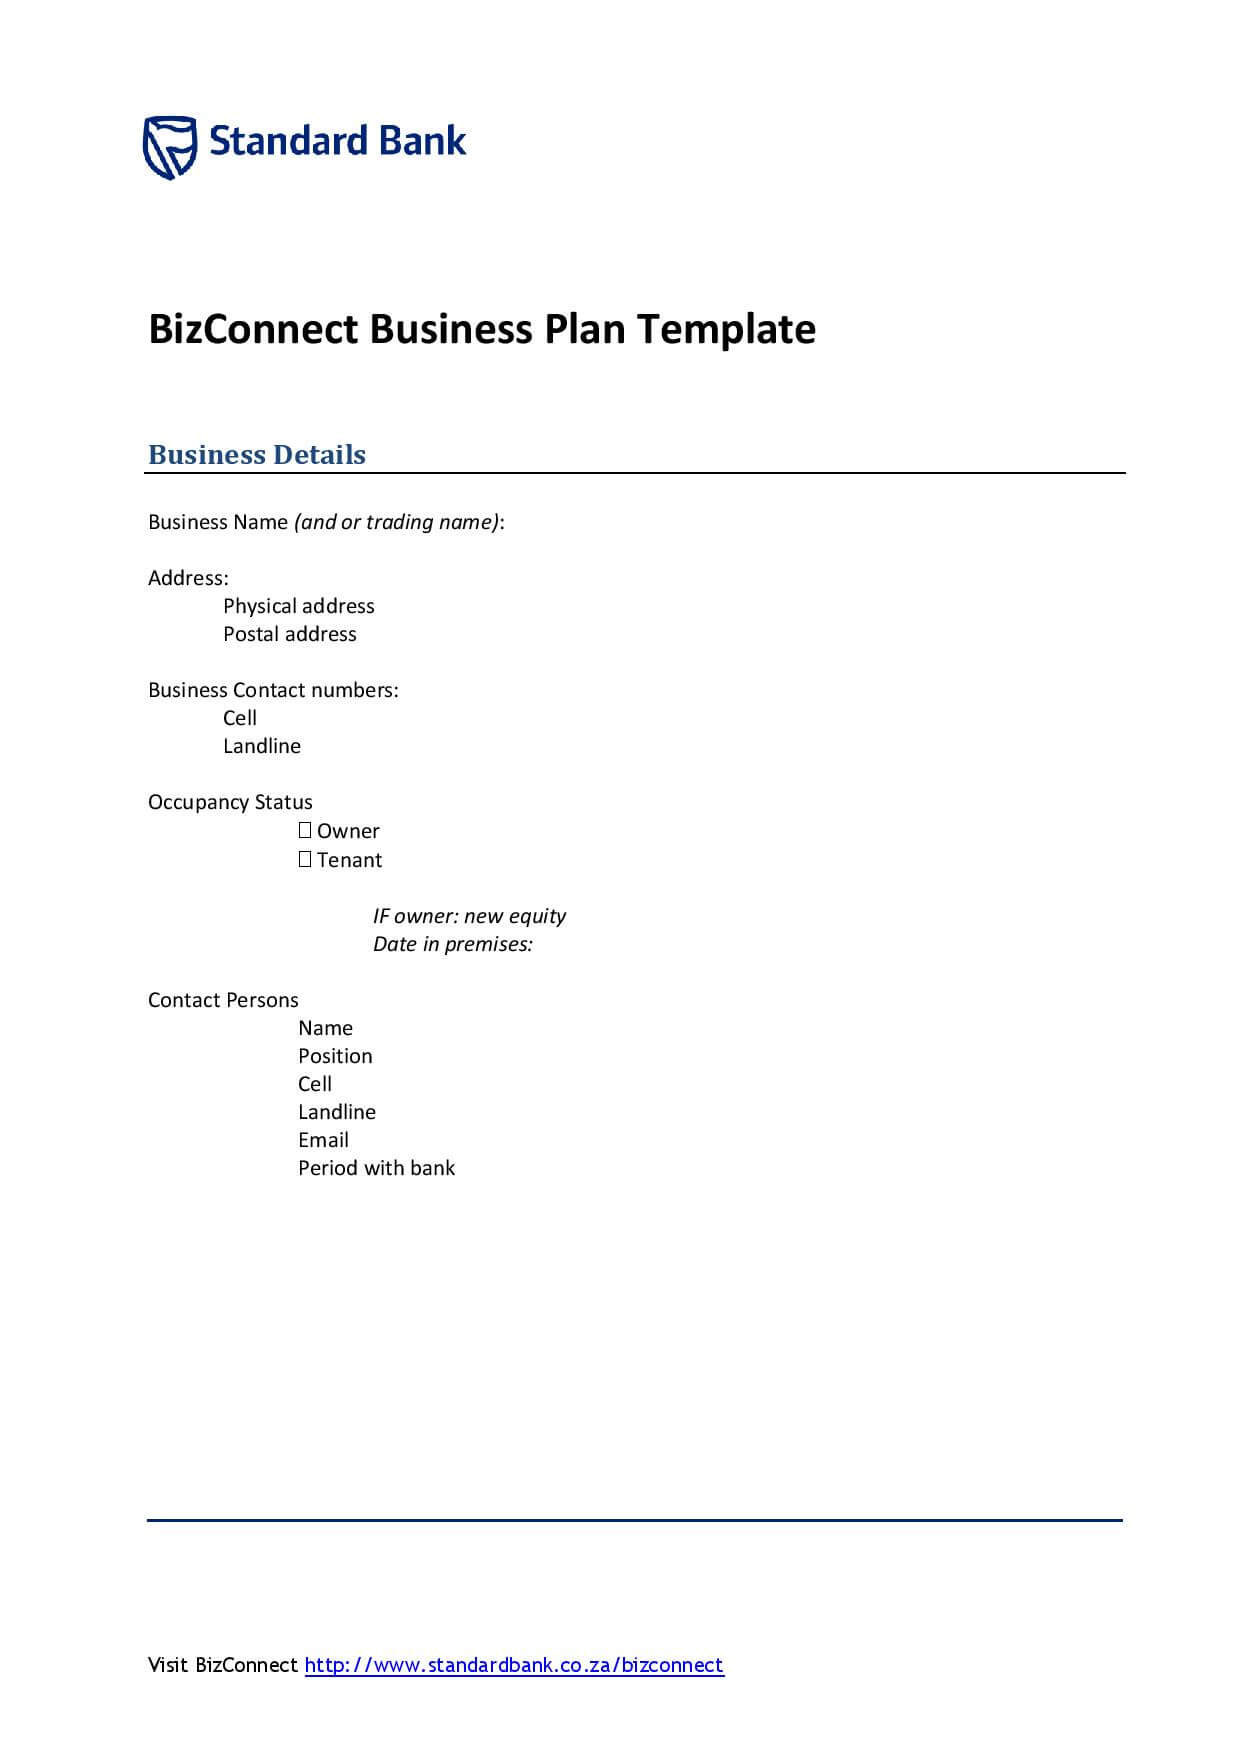 Download a free business plan template formfactory search wajeb Gallery